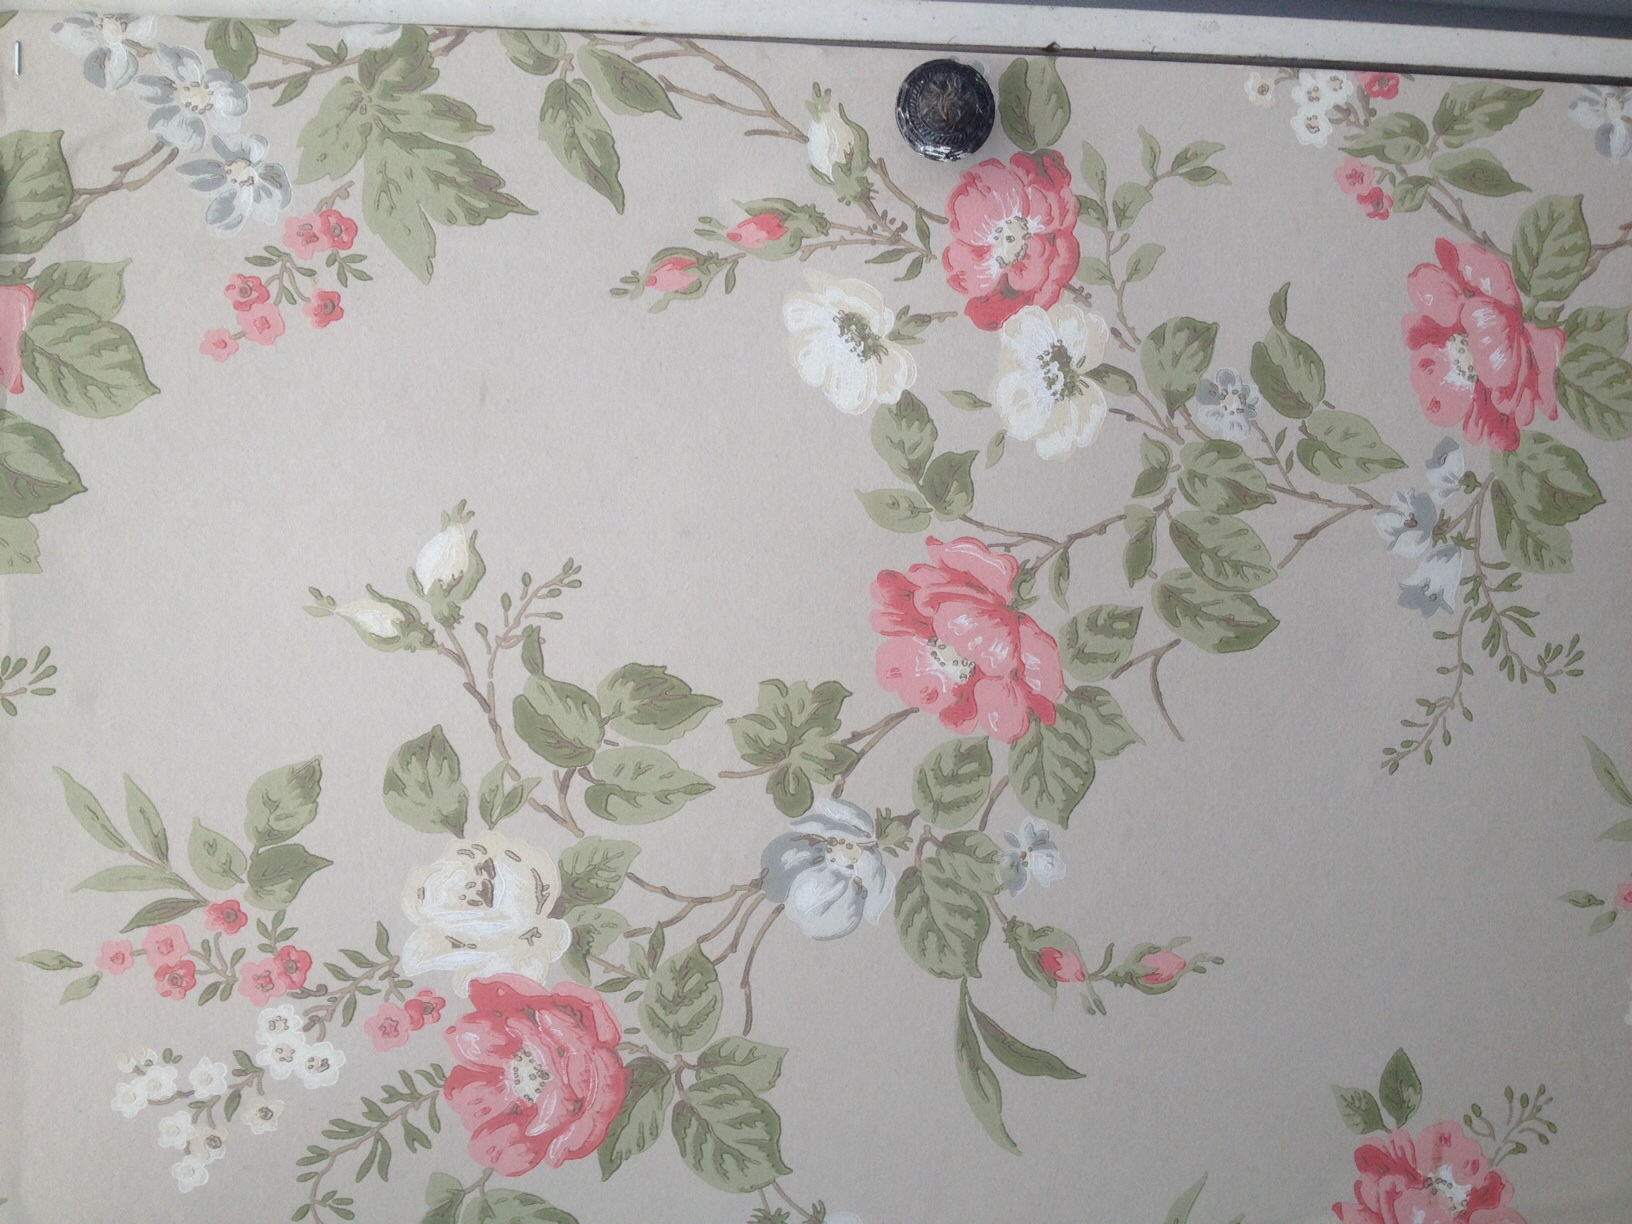 Covering furniture with wallpaper